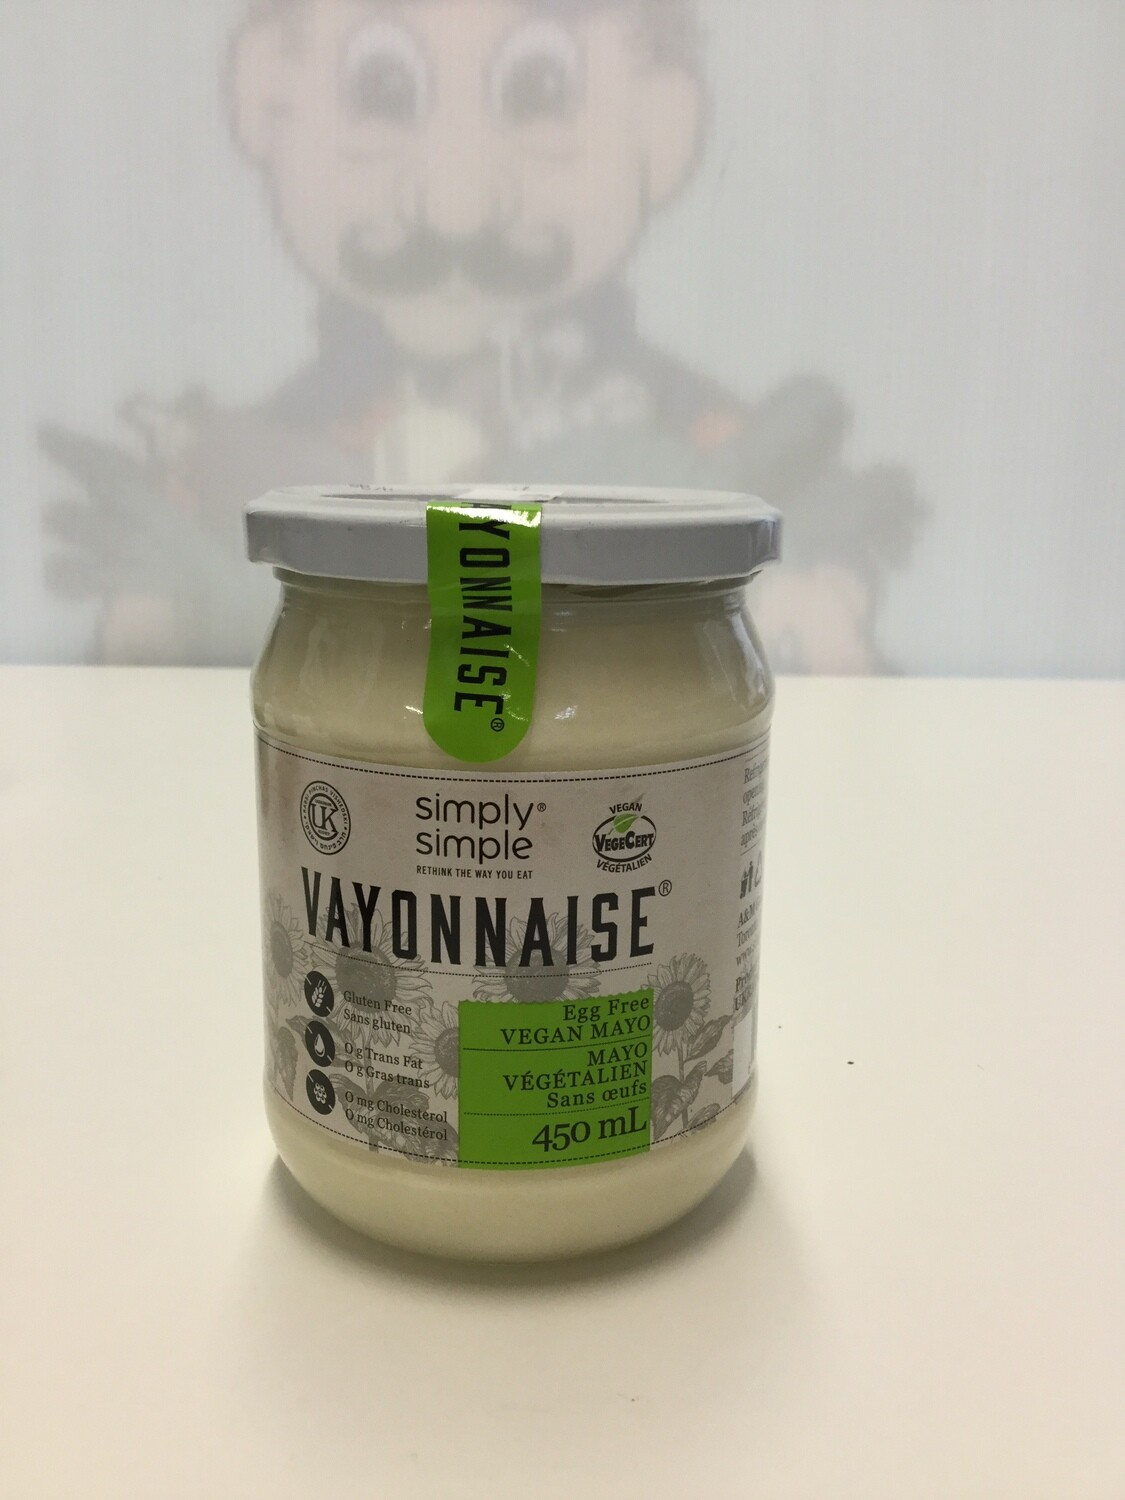 SIMPLY SIMPLE Vayonnaise 450ml